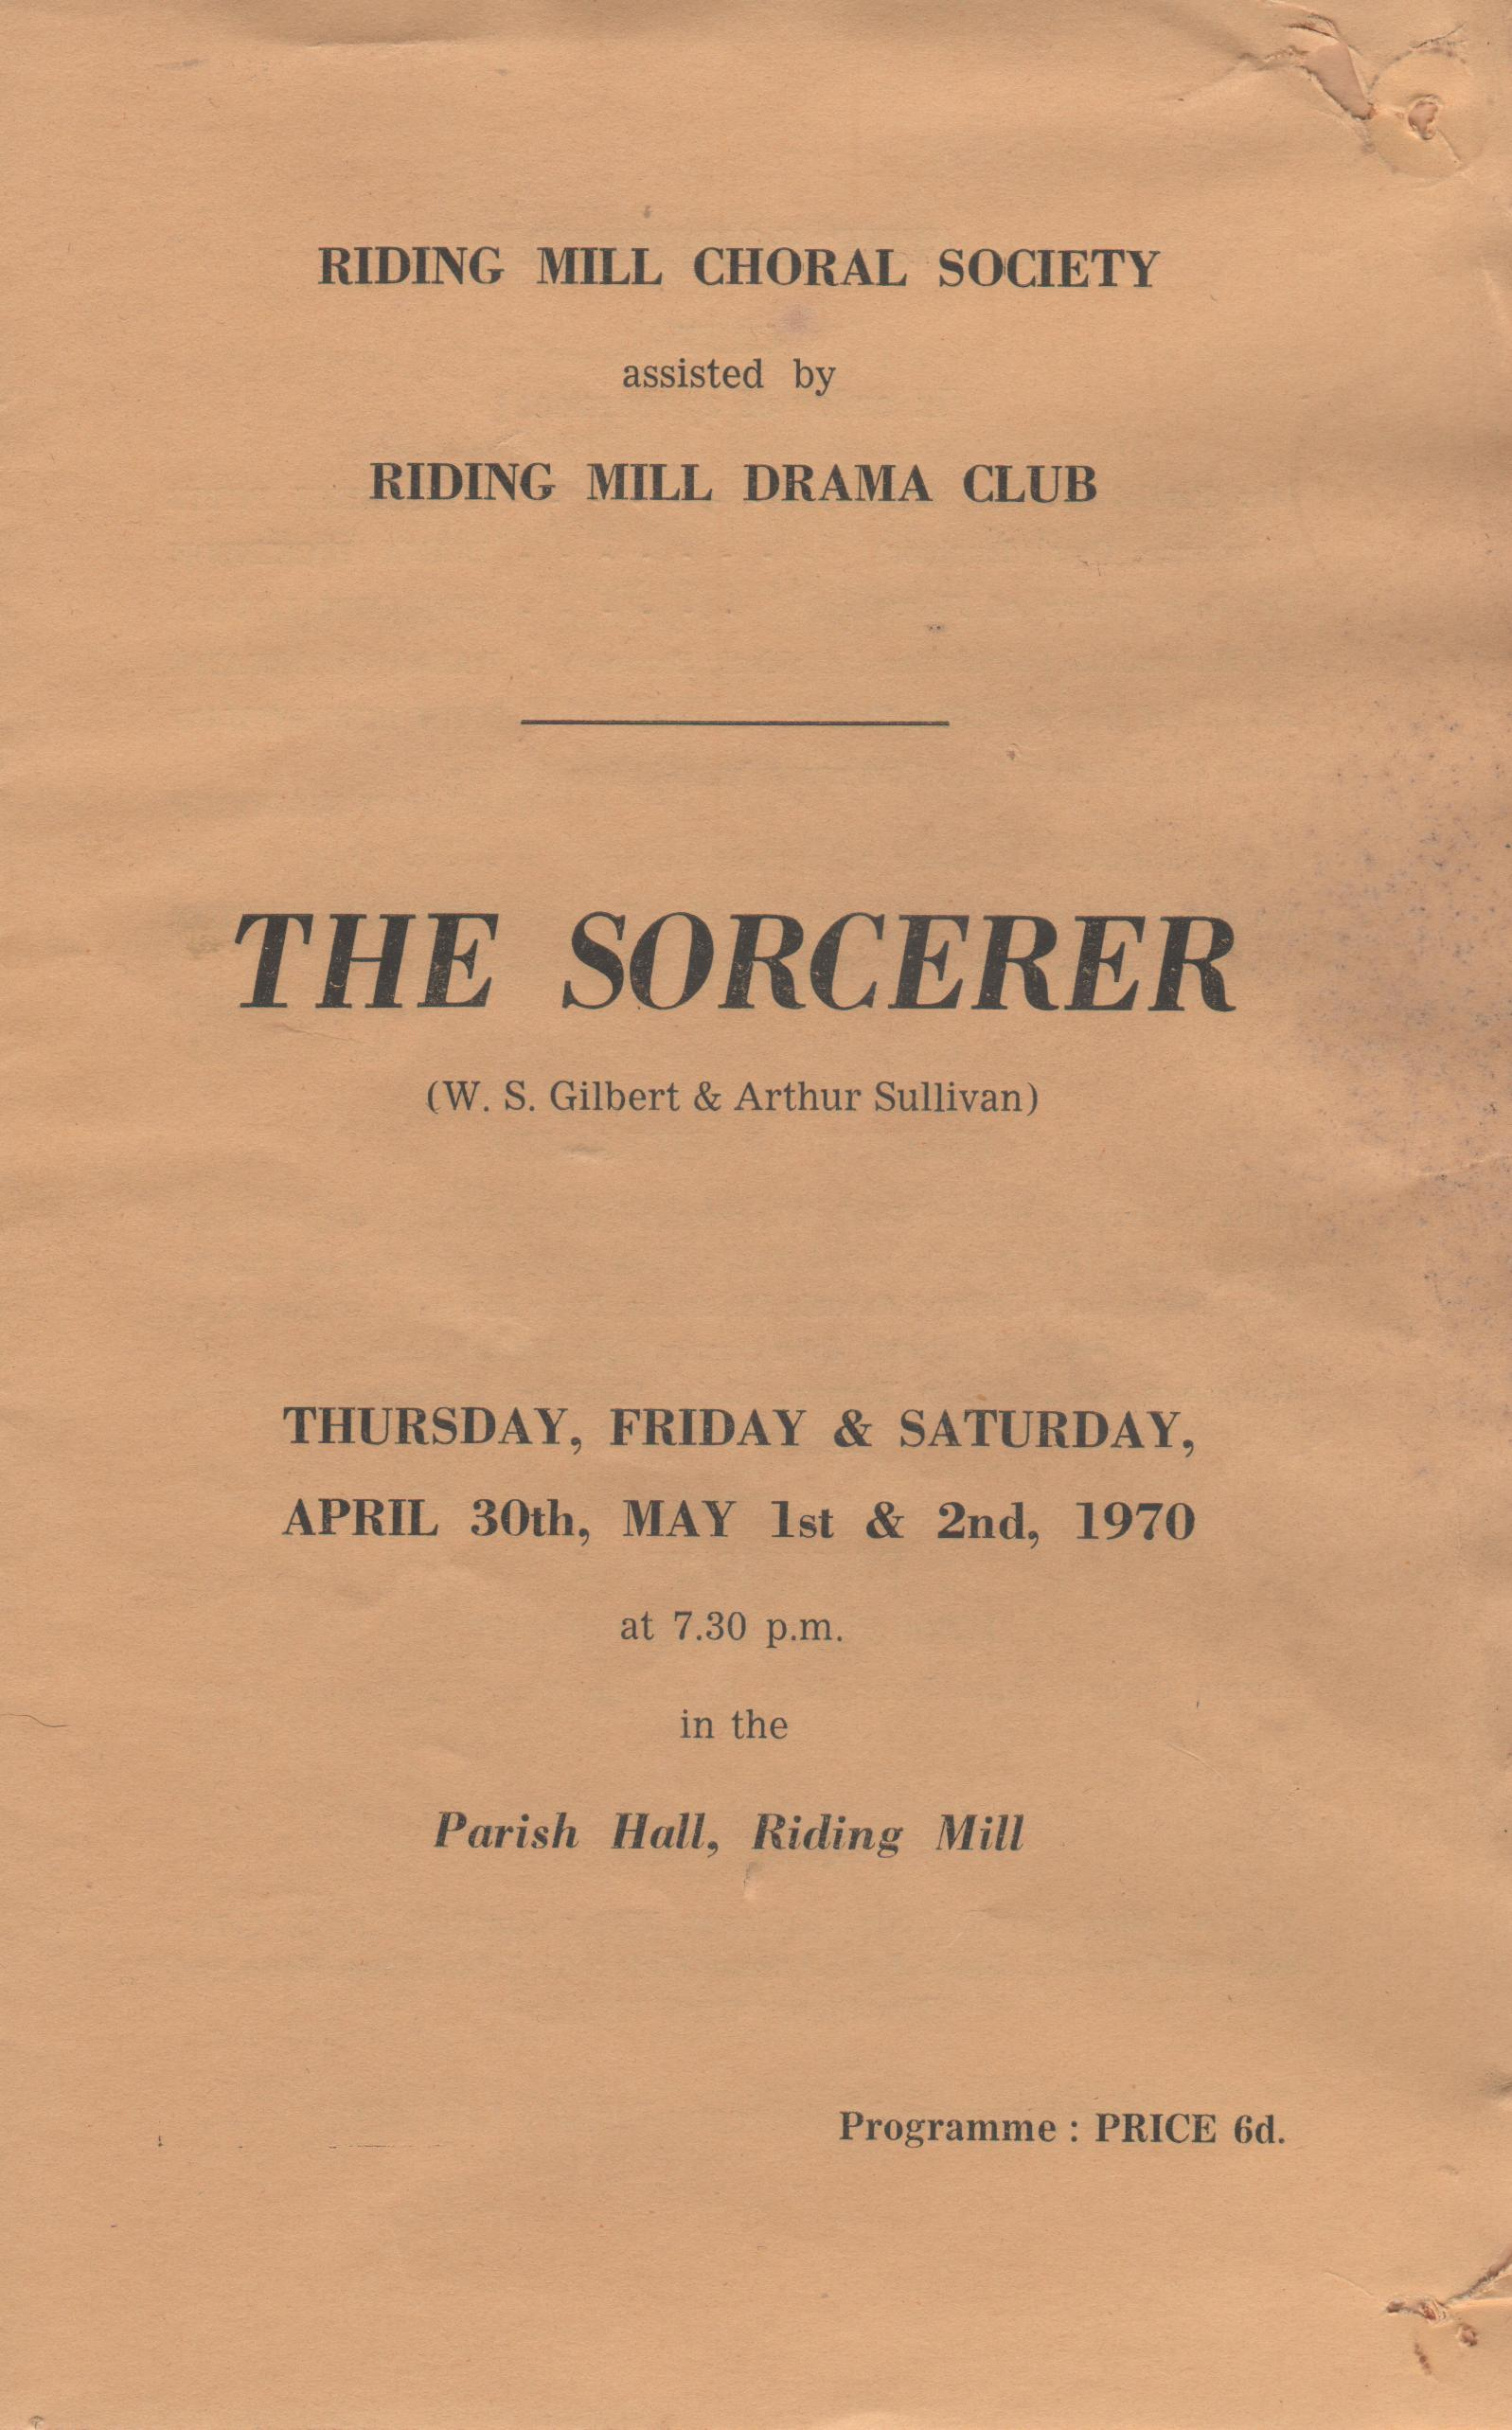 1970, Riding Mill Drama Club, The Sorcer